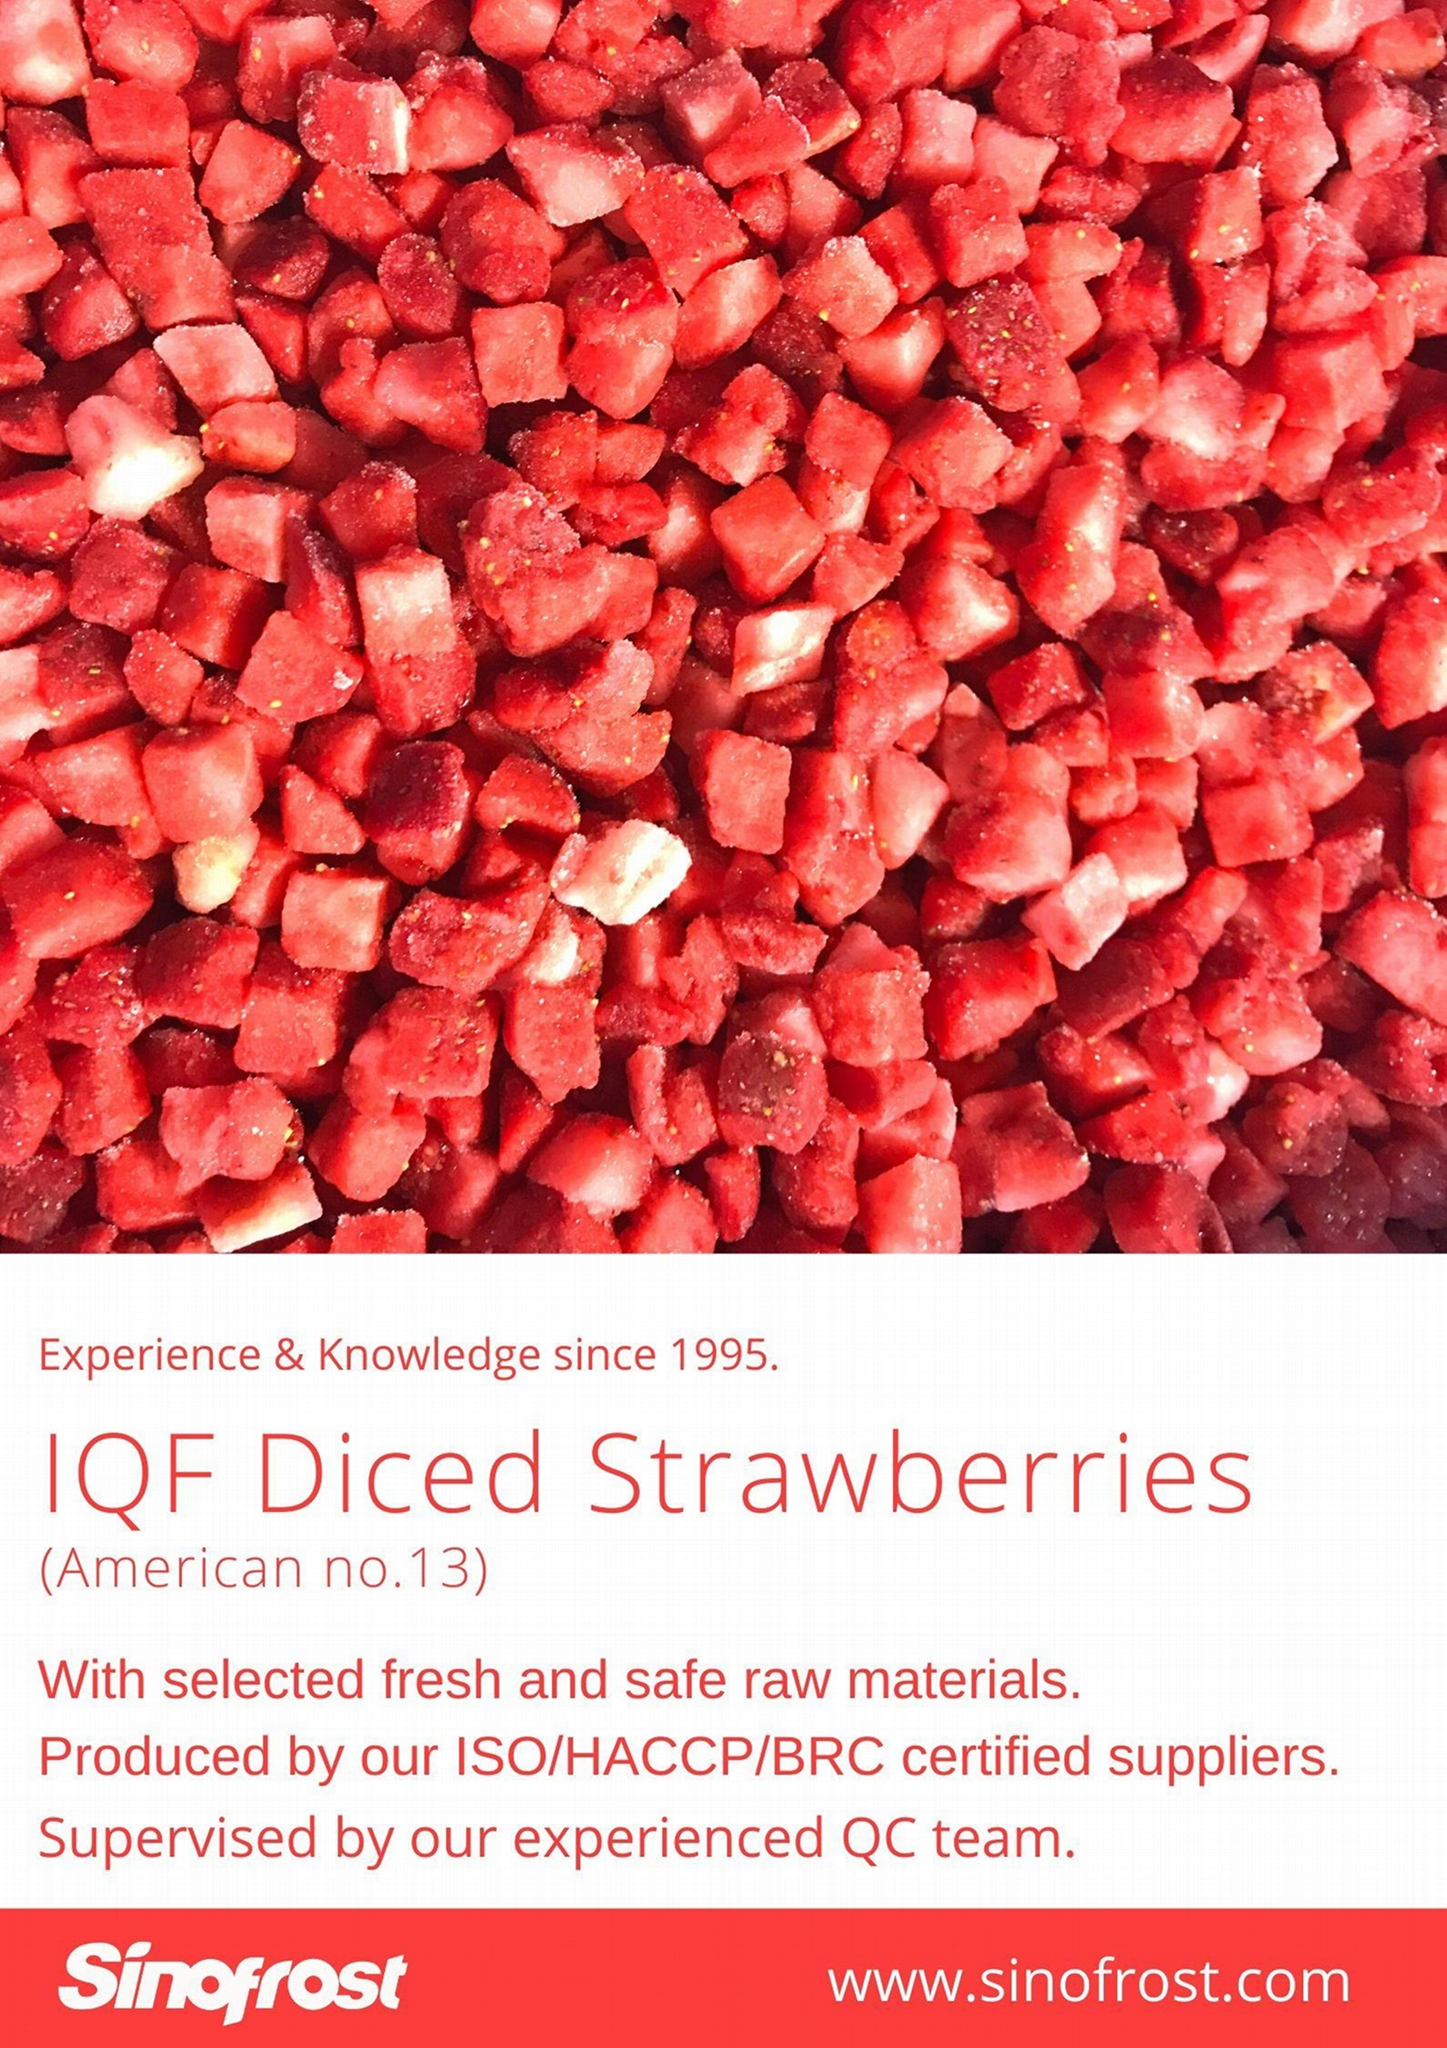 IQF Diced Strawberries,Frozen Strawberry Dices,IQF Sliced Strawberries 14